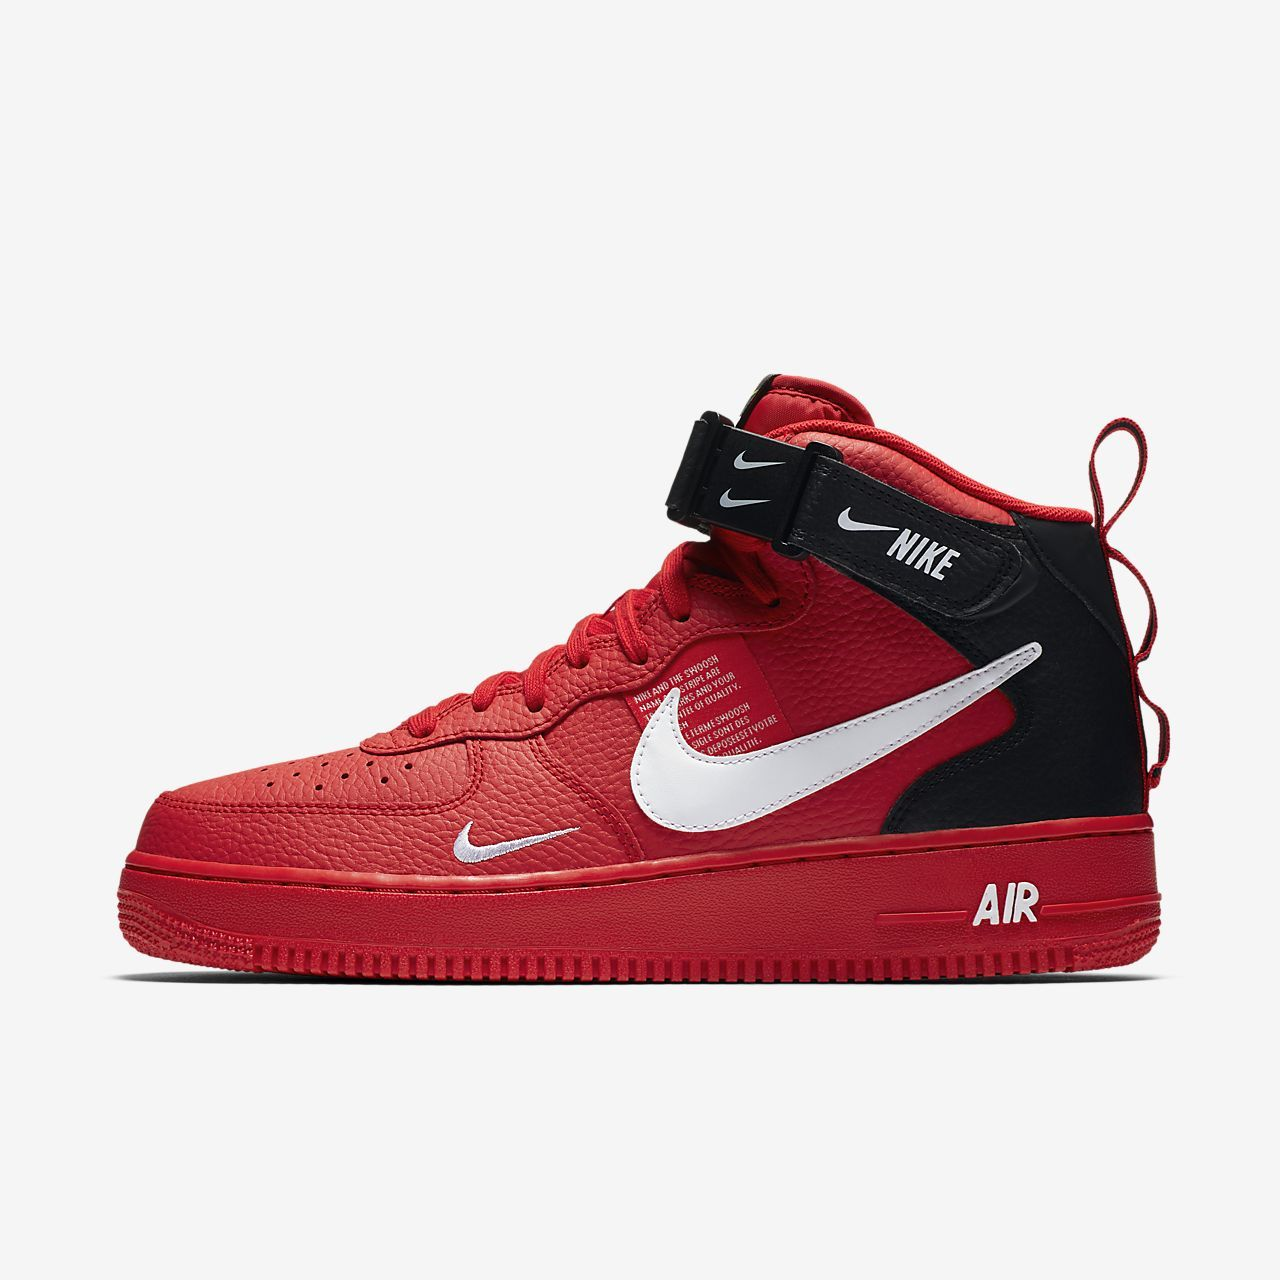 brand new 84f76 7ee66 Sko Nike Air Force 1 07 Mid LV8 för män